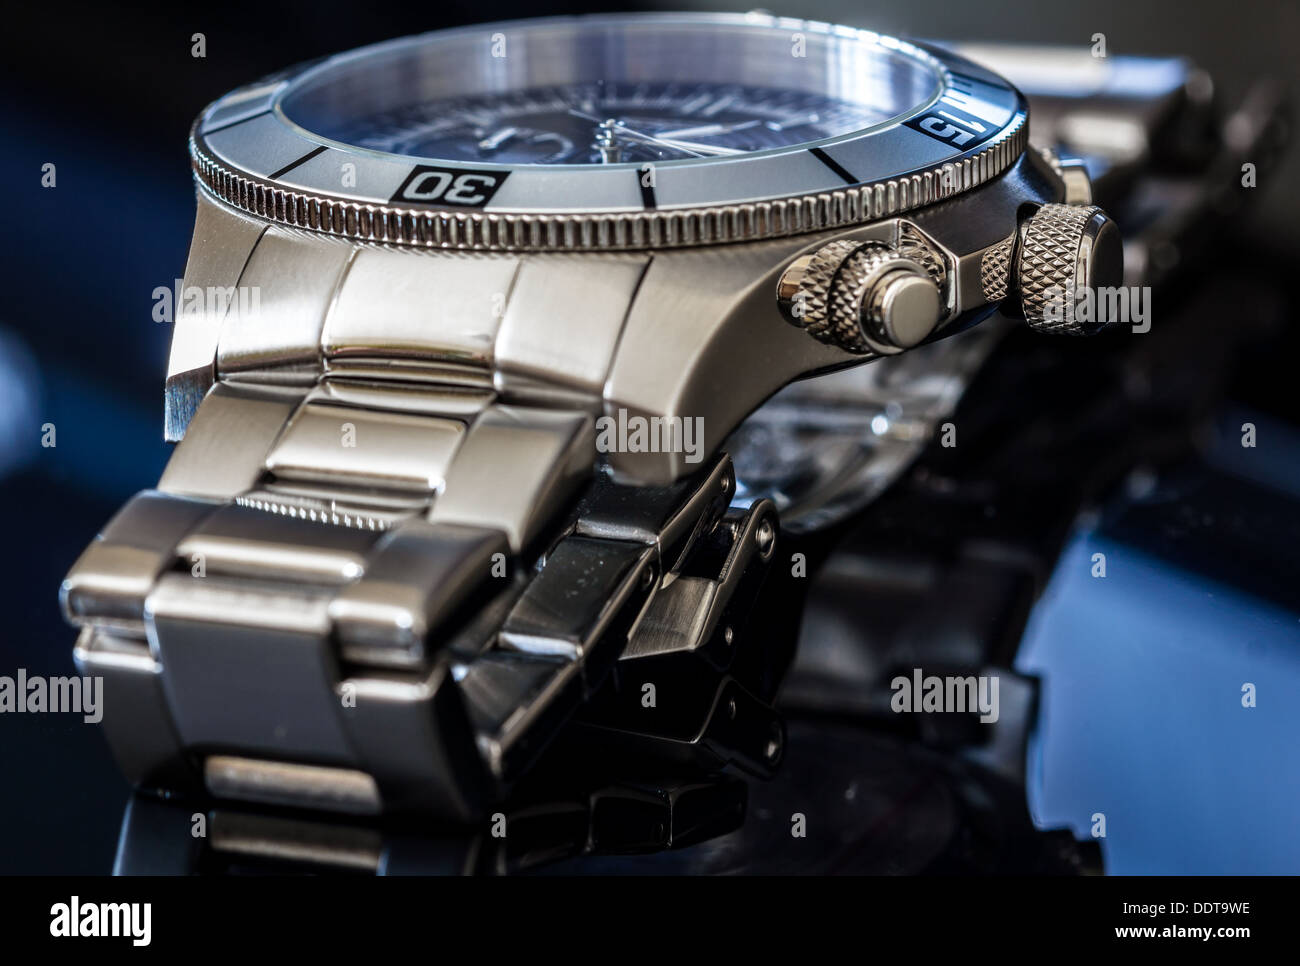 Luxury Watch over reflective surface. Selective focus, shallow depth of field. - Stock Image